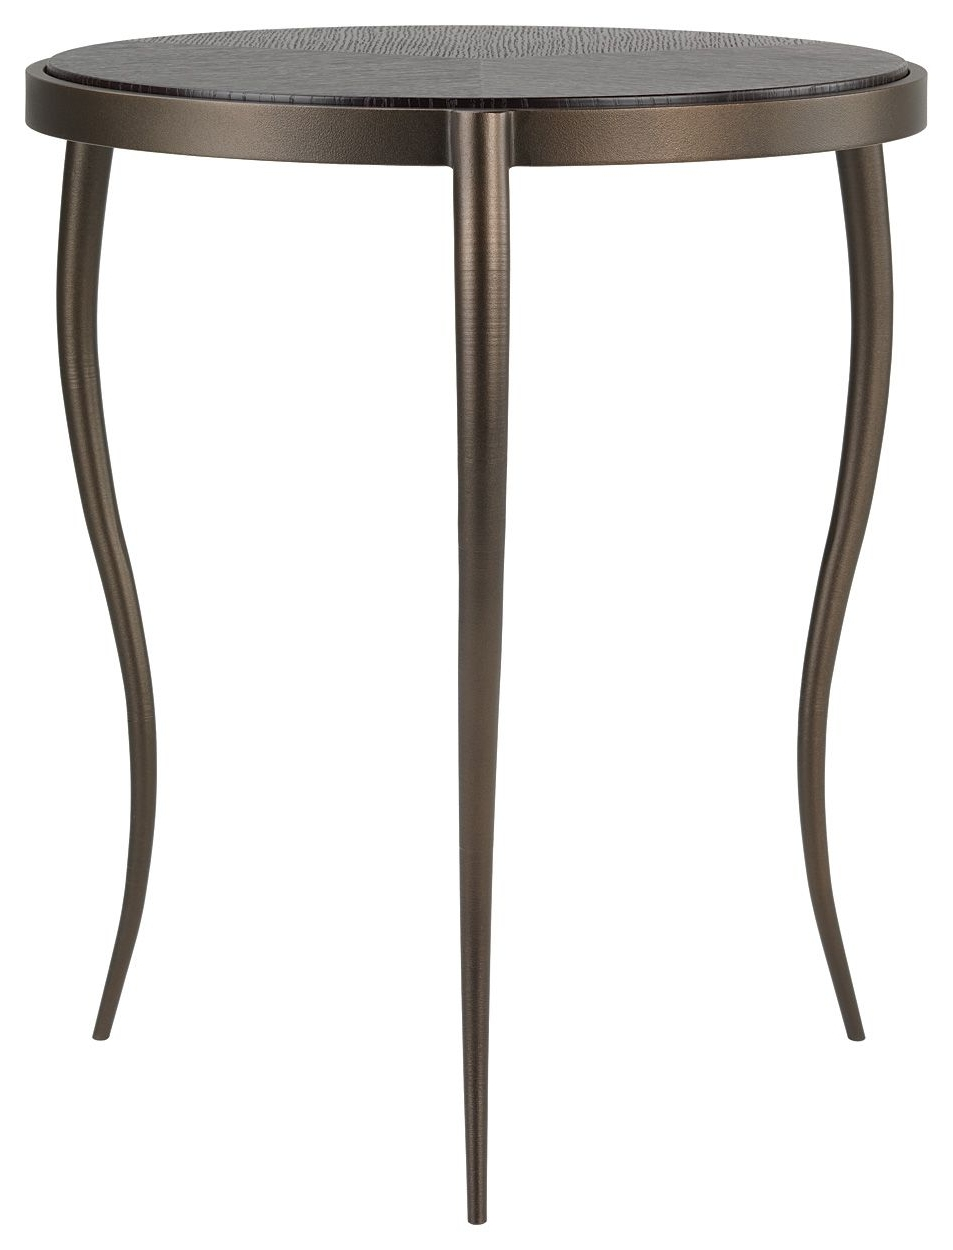 Brinkley Side Table In Textured Bronze With A Dark Smoked Oak Top Throughout Most Current Smoked Oak Side Tables (View 2 of 20)